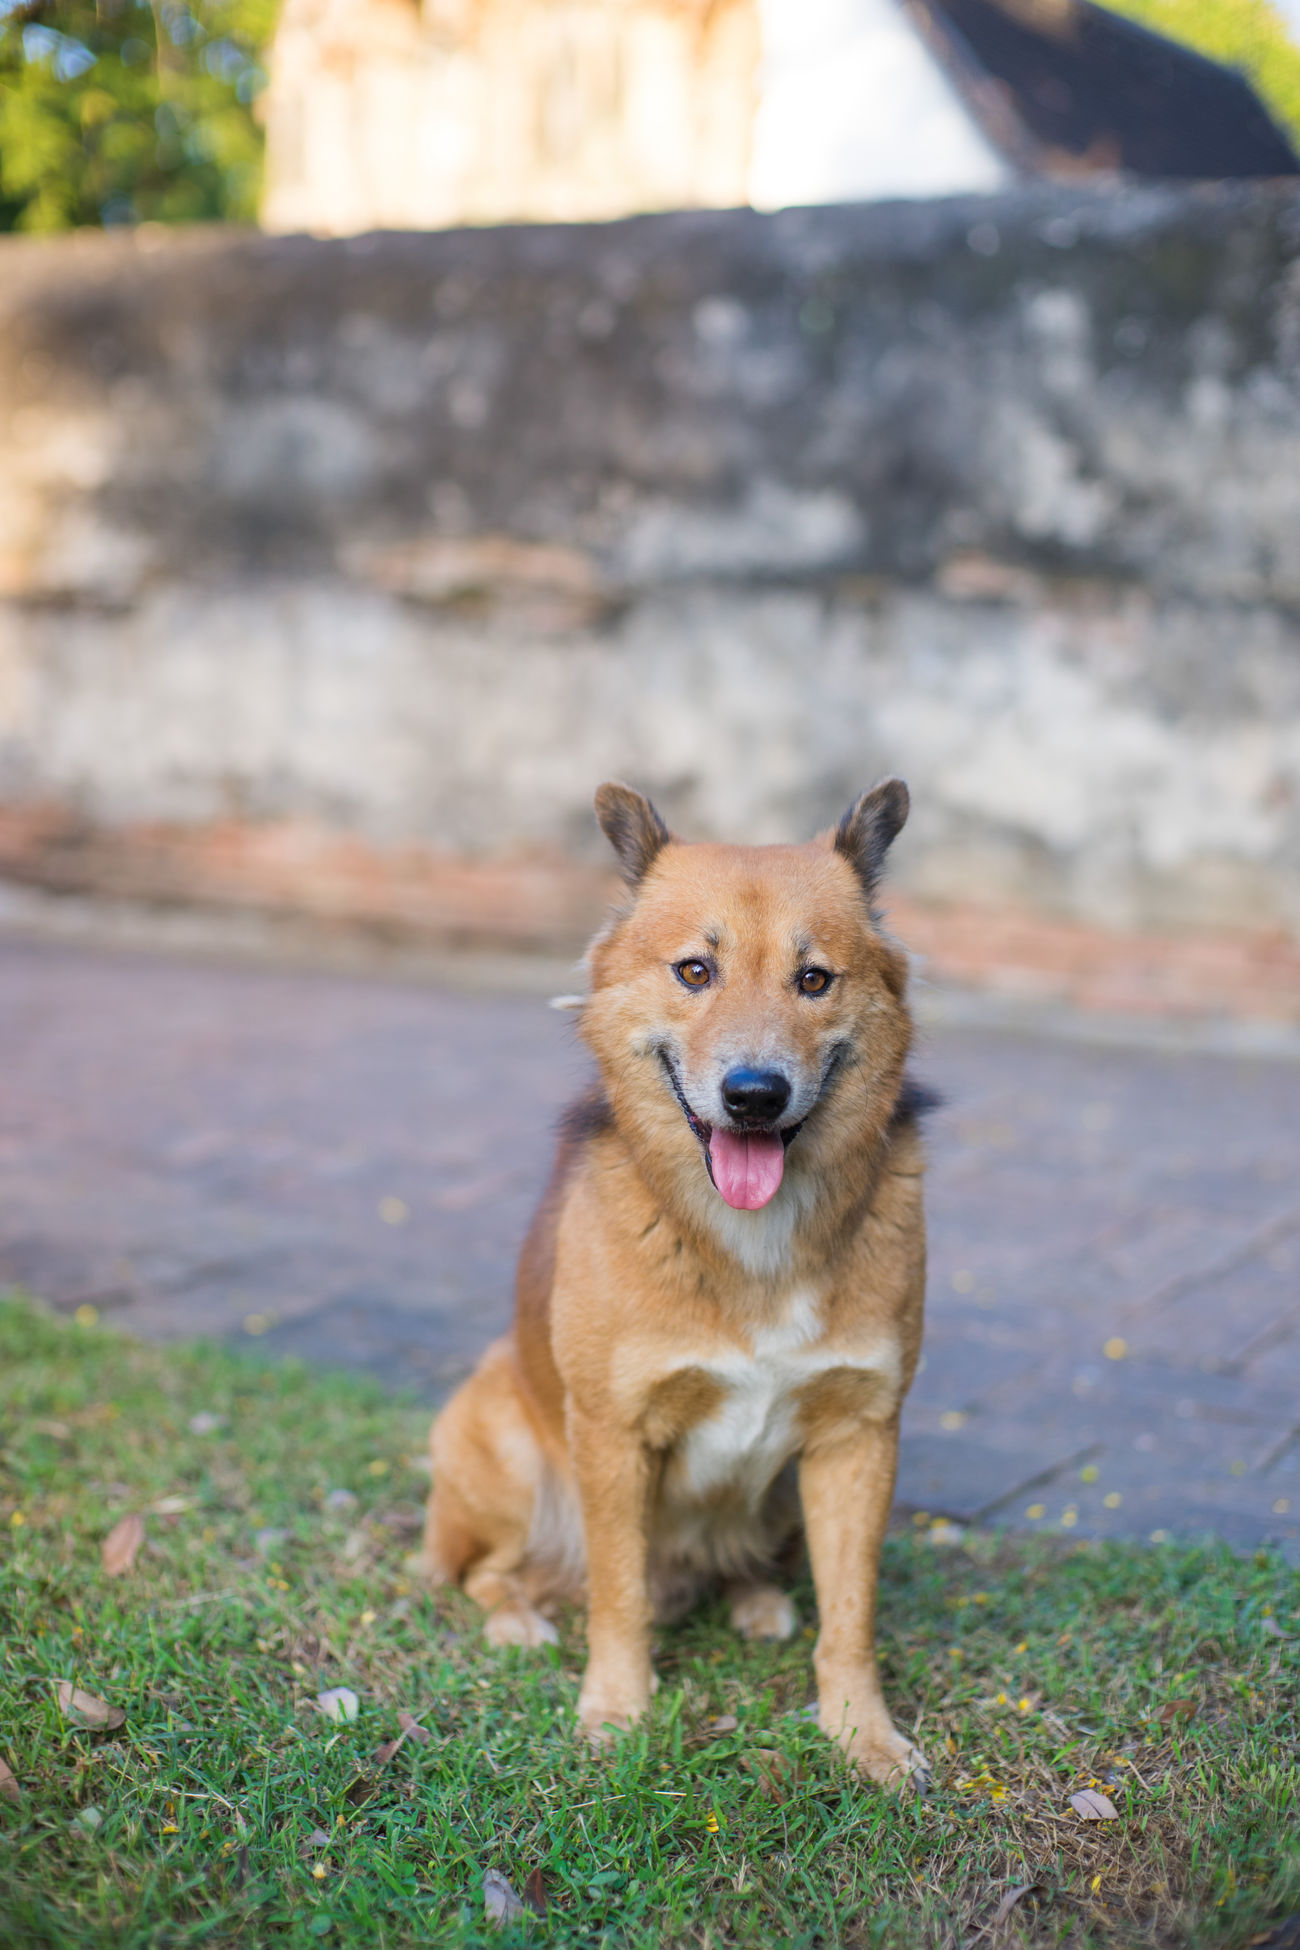 Dog in a Temple Animal Animal Photography Animal Themes Animal Tongue Animal_collection Animals Day Dog Dogs Dogs Of EyeEm Domestic Animals Grass Looking At Camera Mammal Motion Nature No People One Animal Outdoors Pets Portrait Puppy Stray Cat Tounge Out